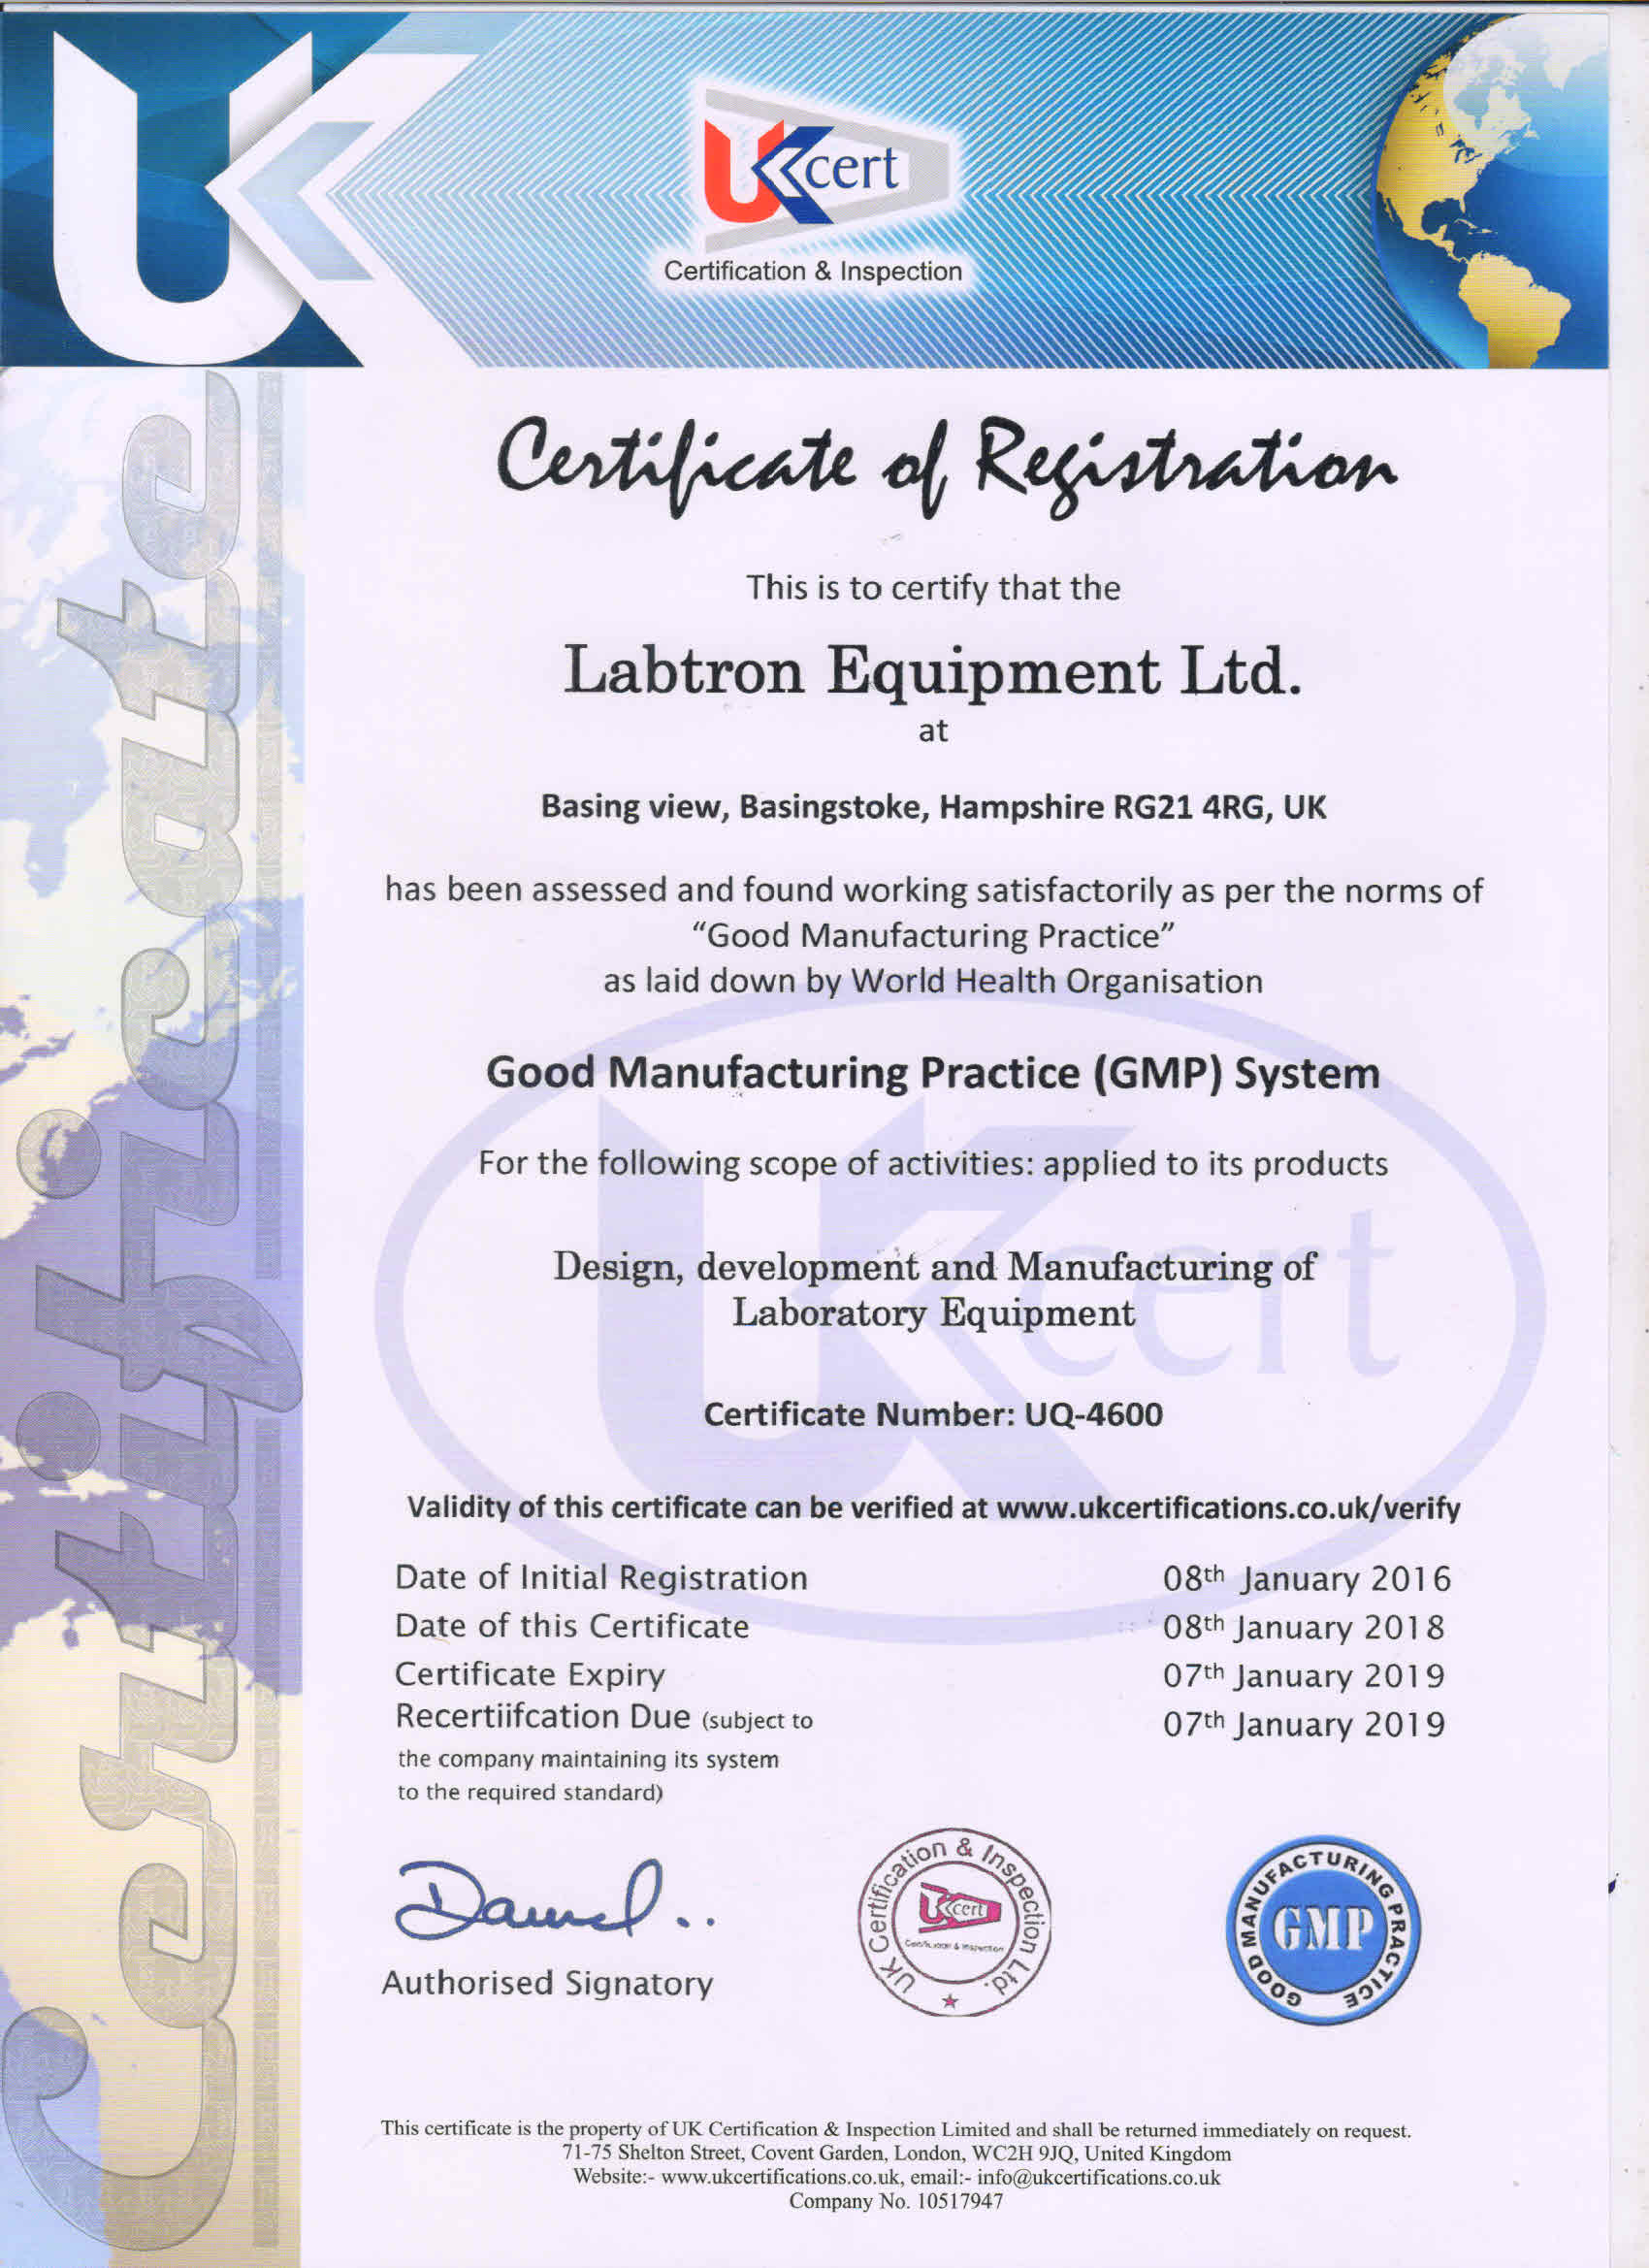 Labtron Equipment Ltd. GMP UQ-4600 UKCert : Labtron Certification